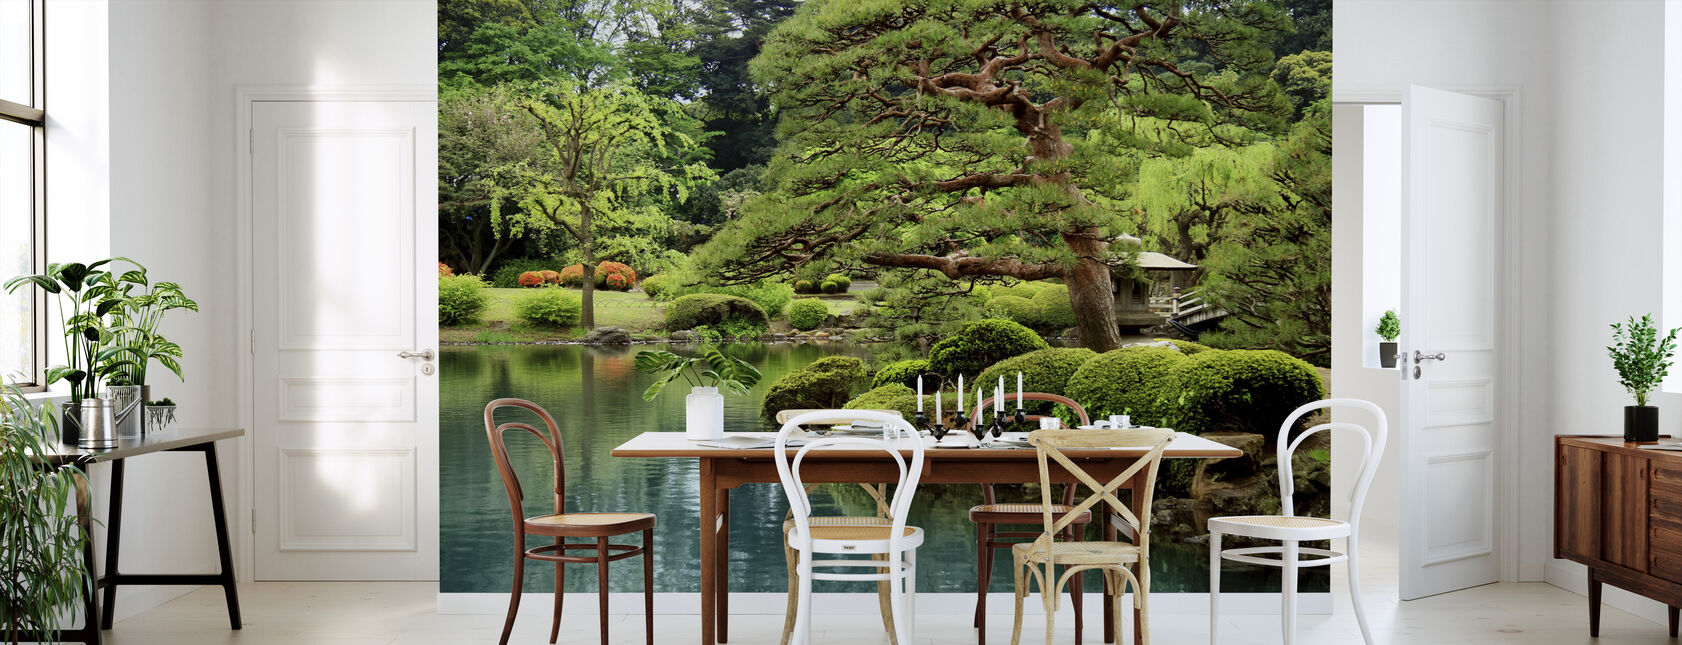 Kalm Zen Lake en Bonsai bomen in Tokio Garden - Behang - Keuken